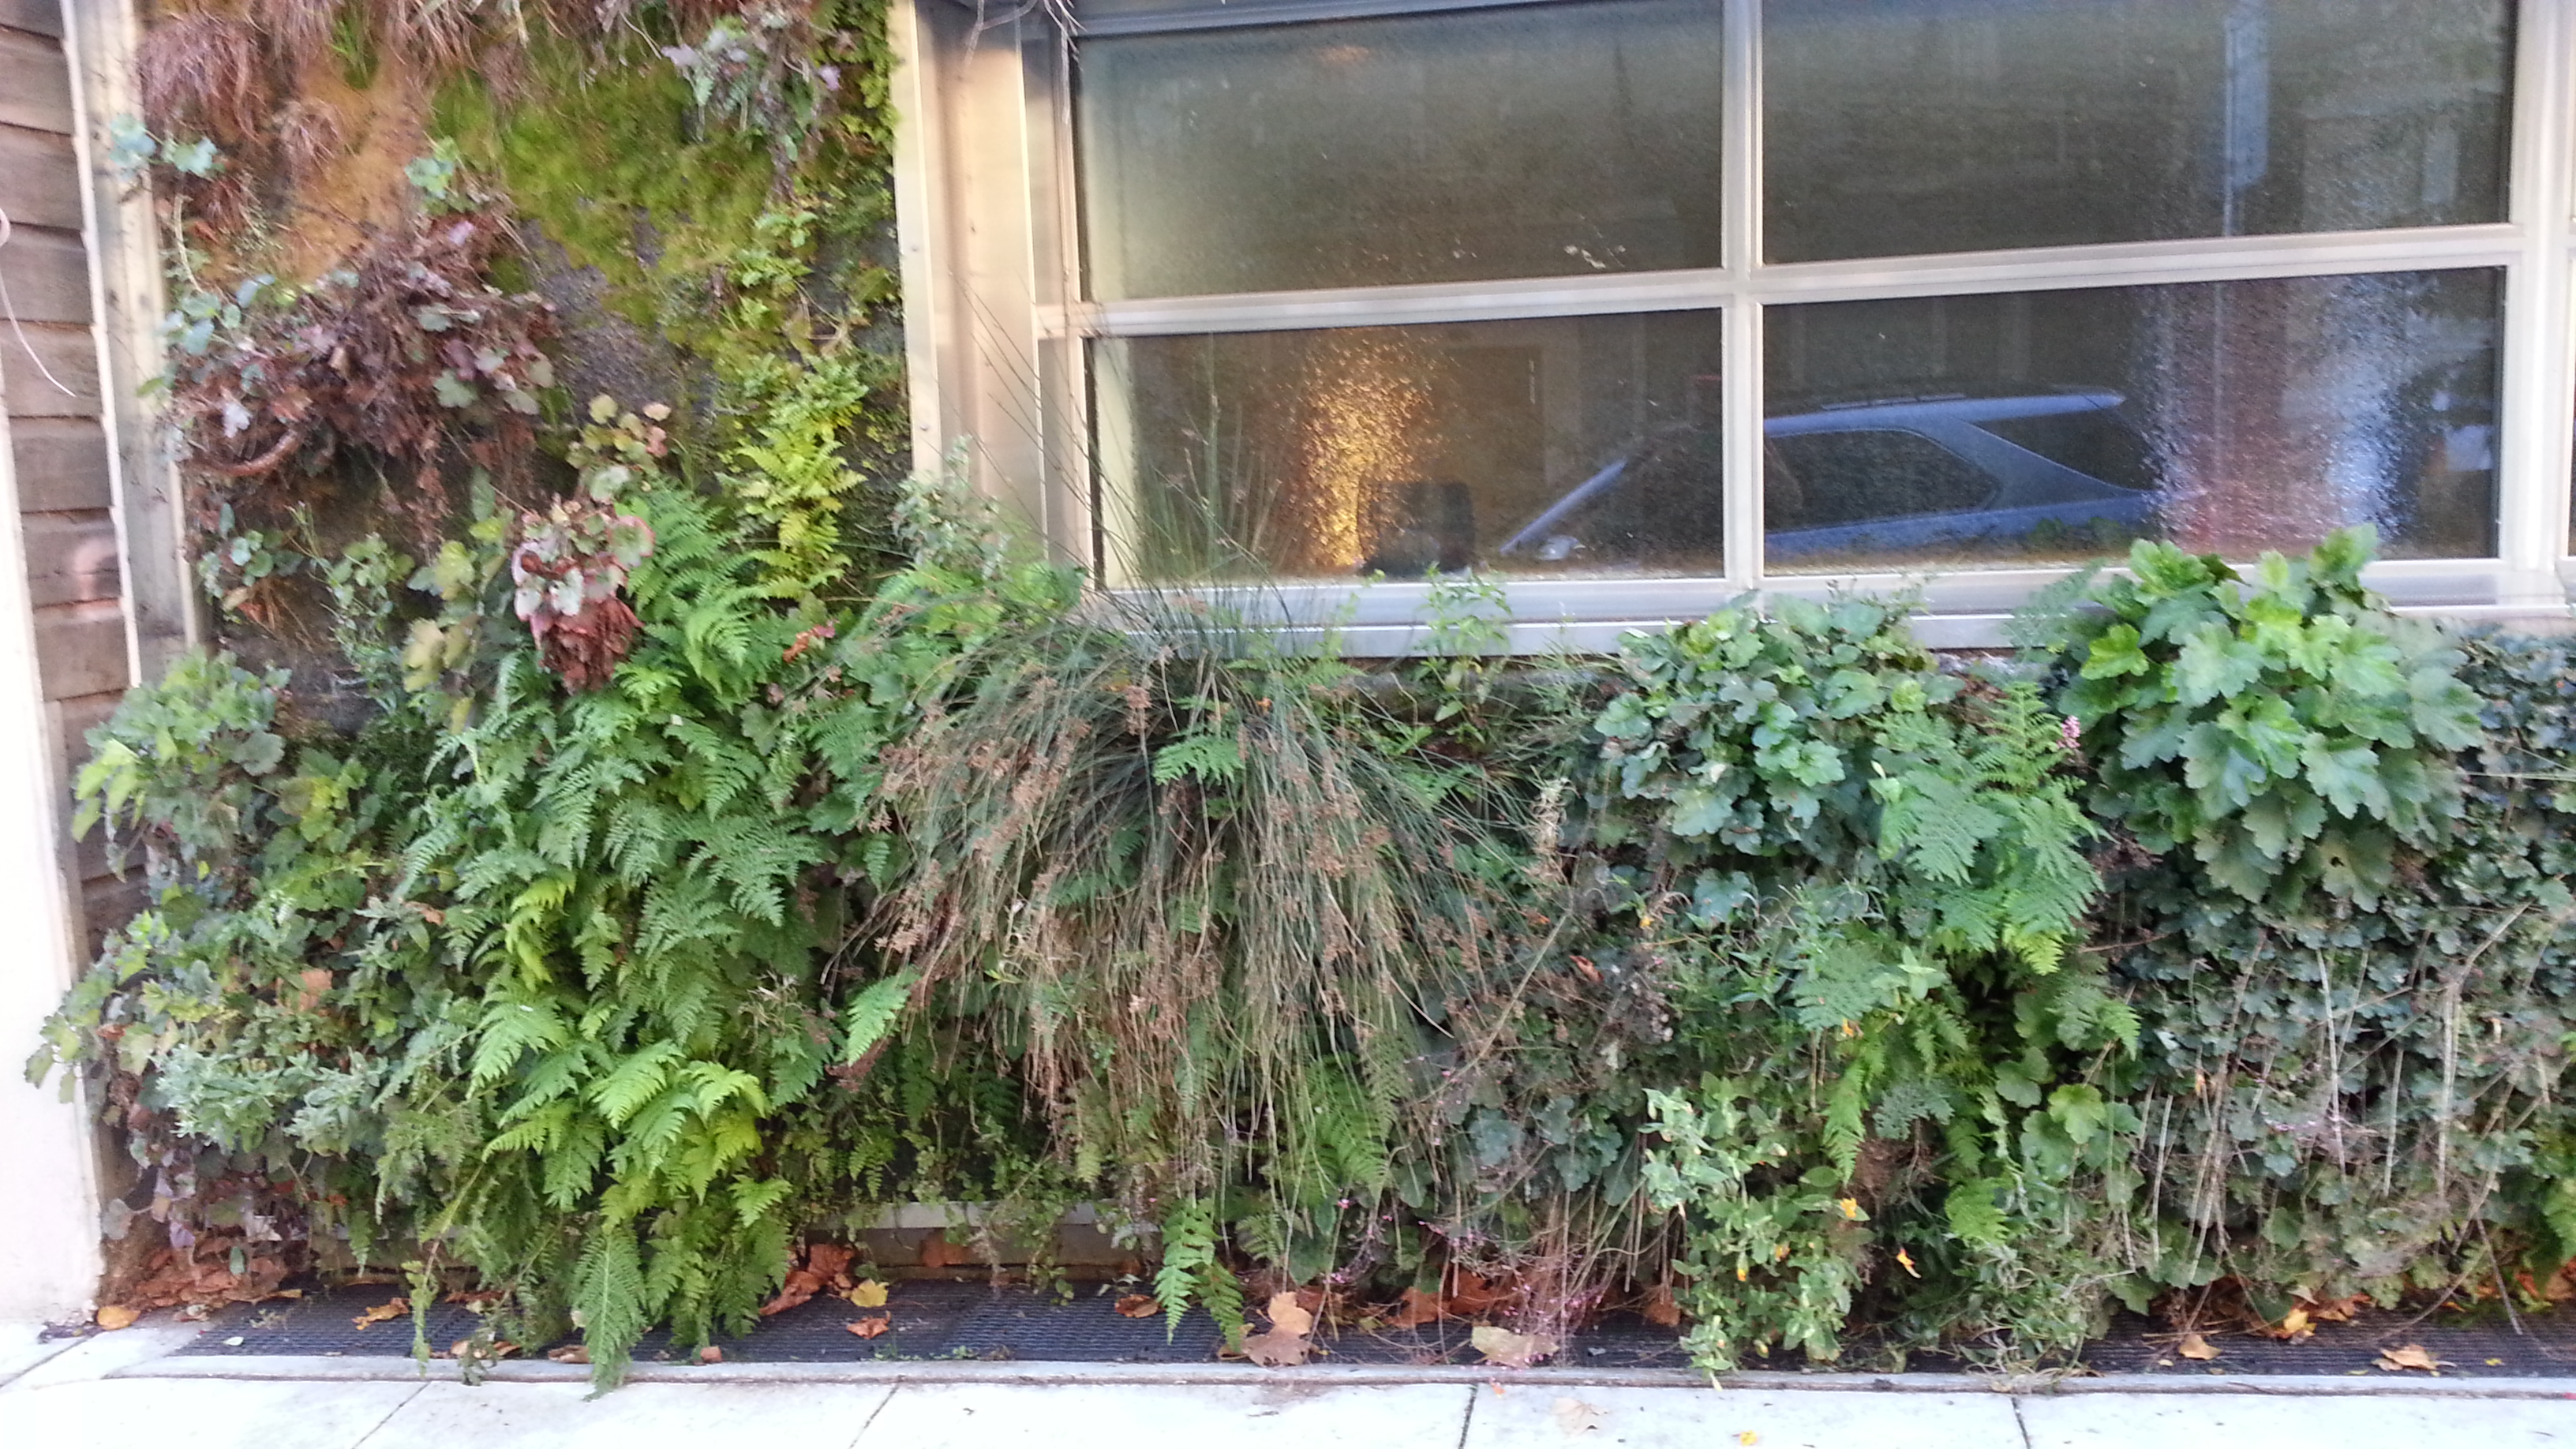 Urban wall garden far out flora - Seasonal Browns And Greens Thanks To Seeds And Semi Dormancy The Rest